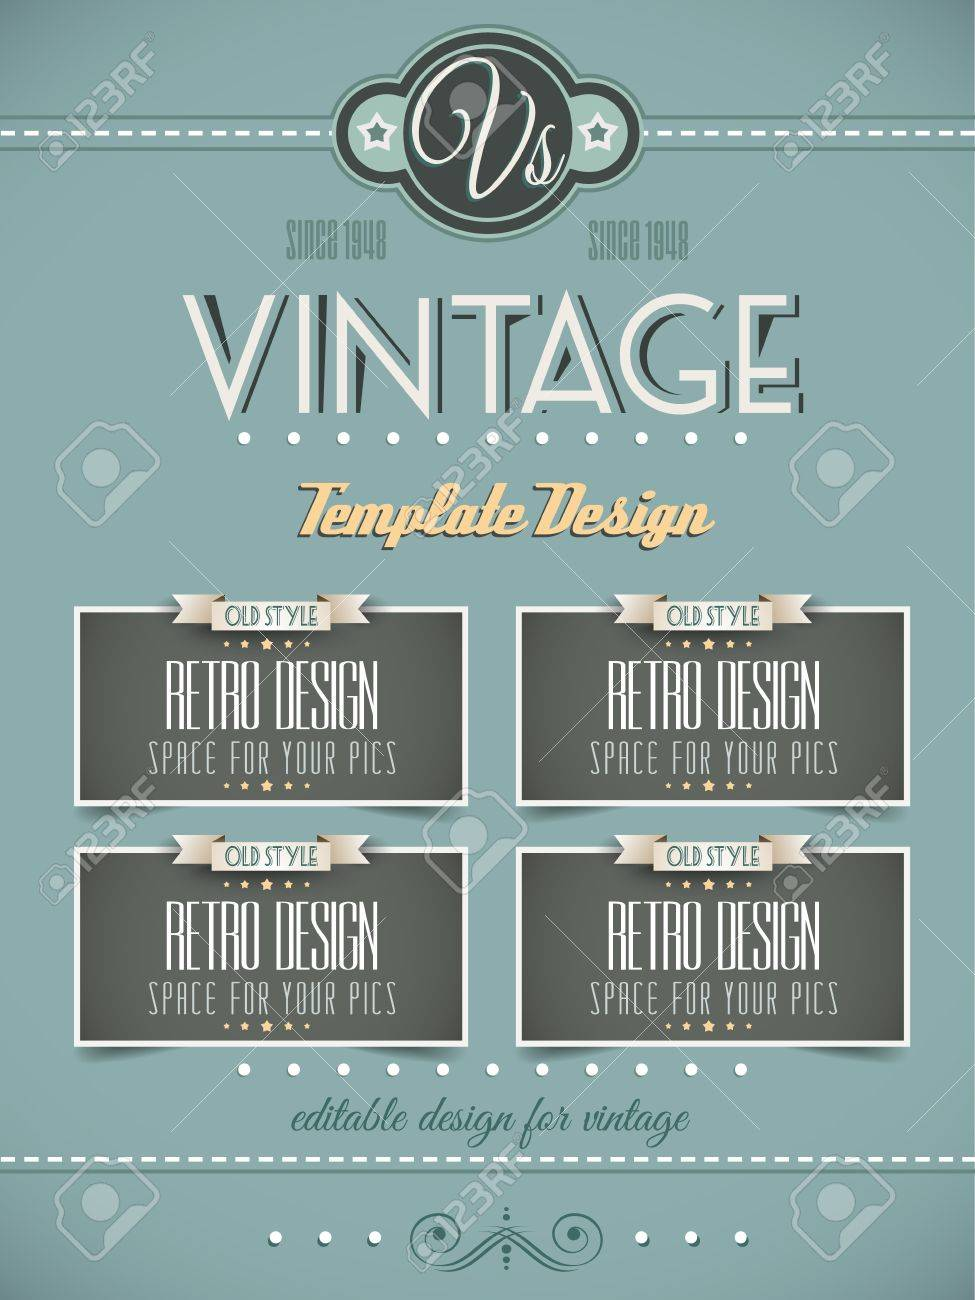 vintage retro page template for a variety of purposes website